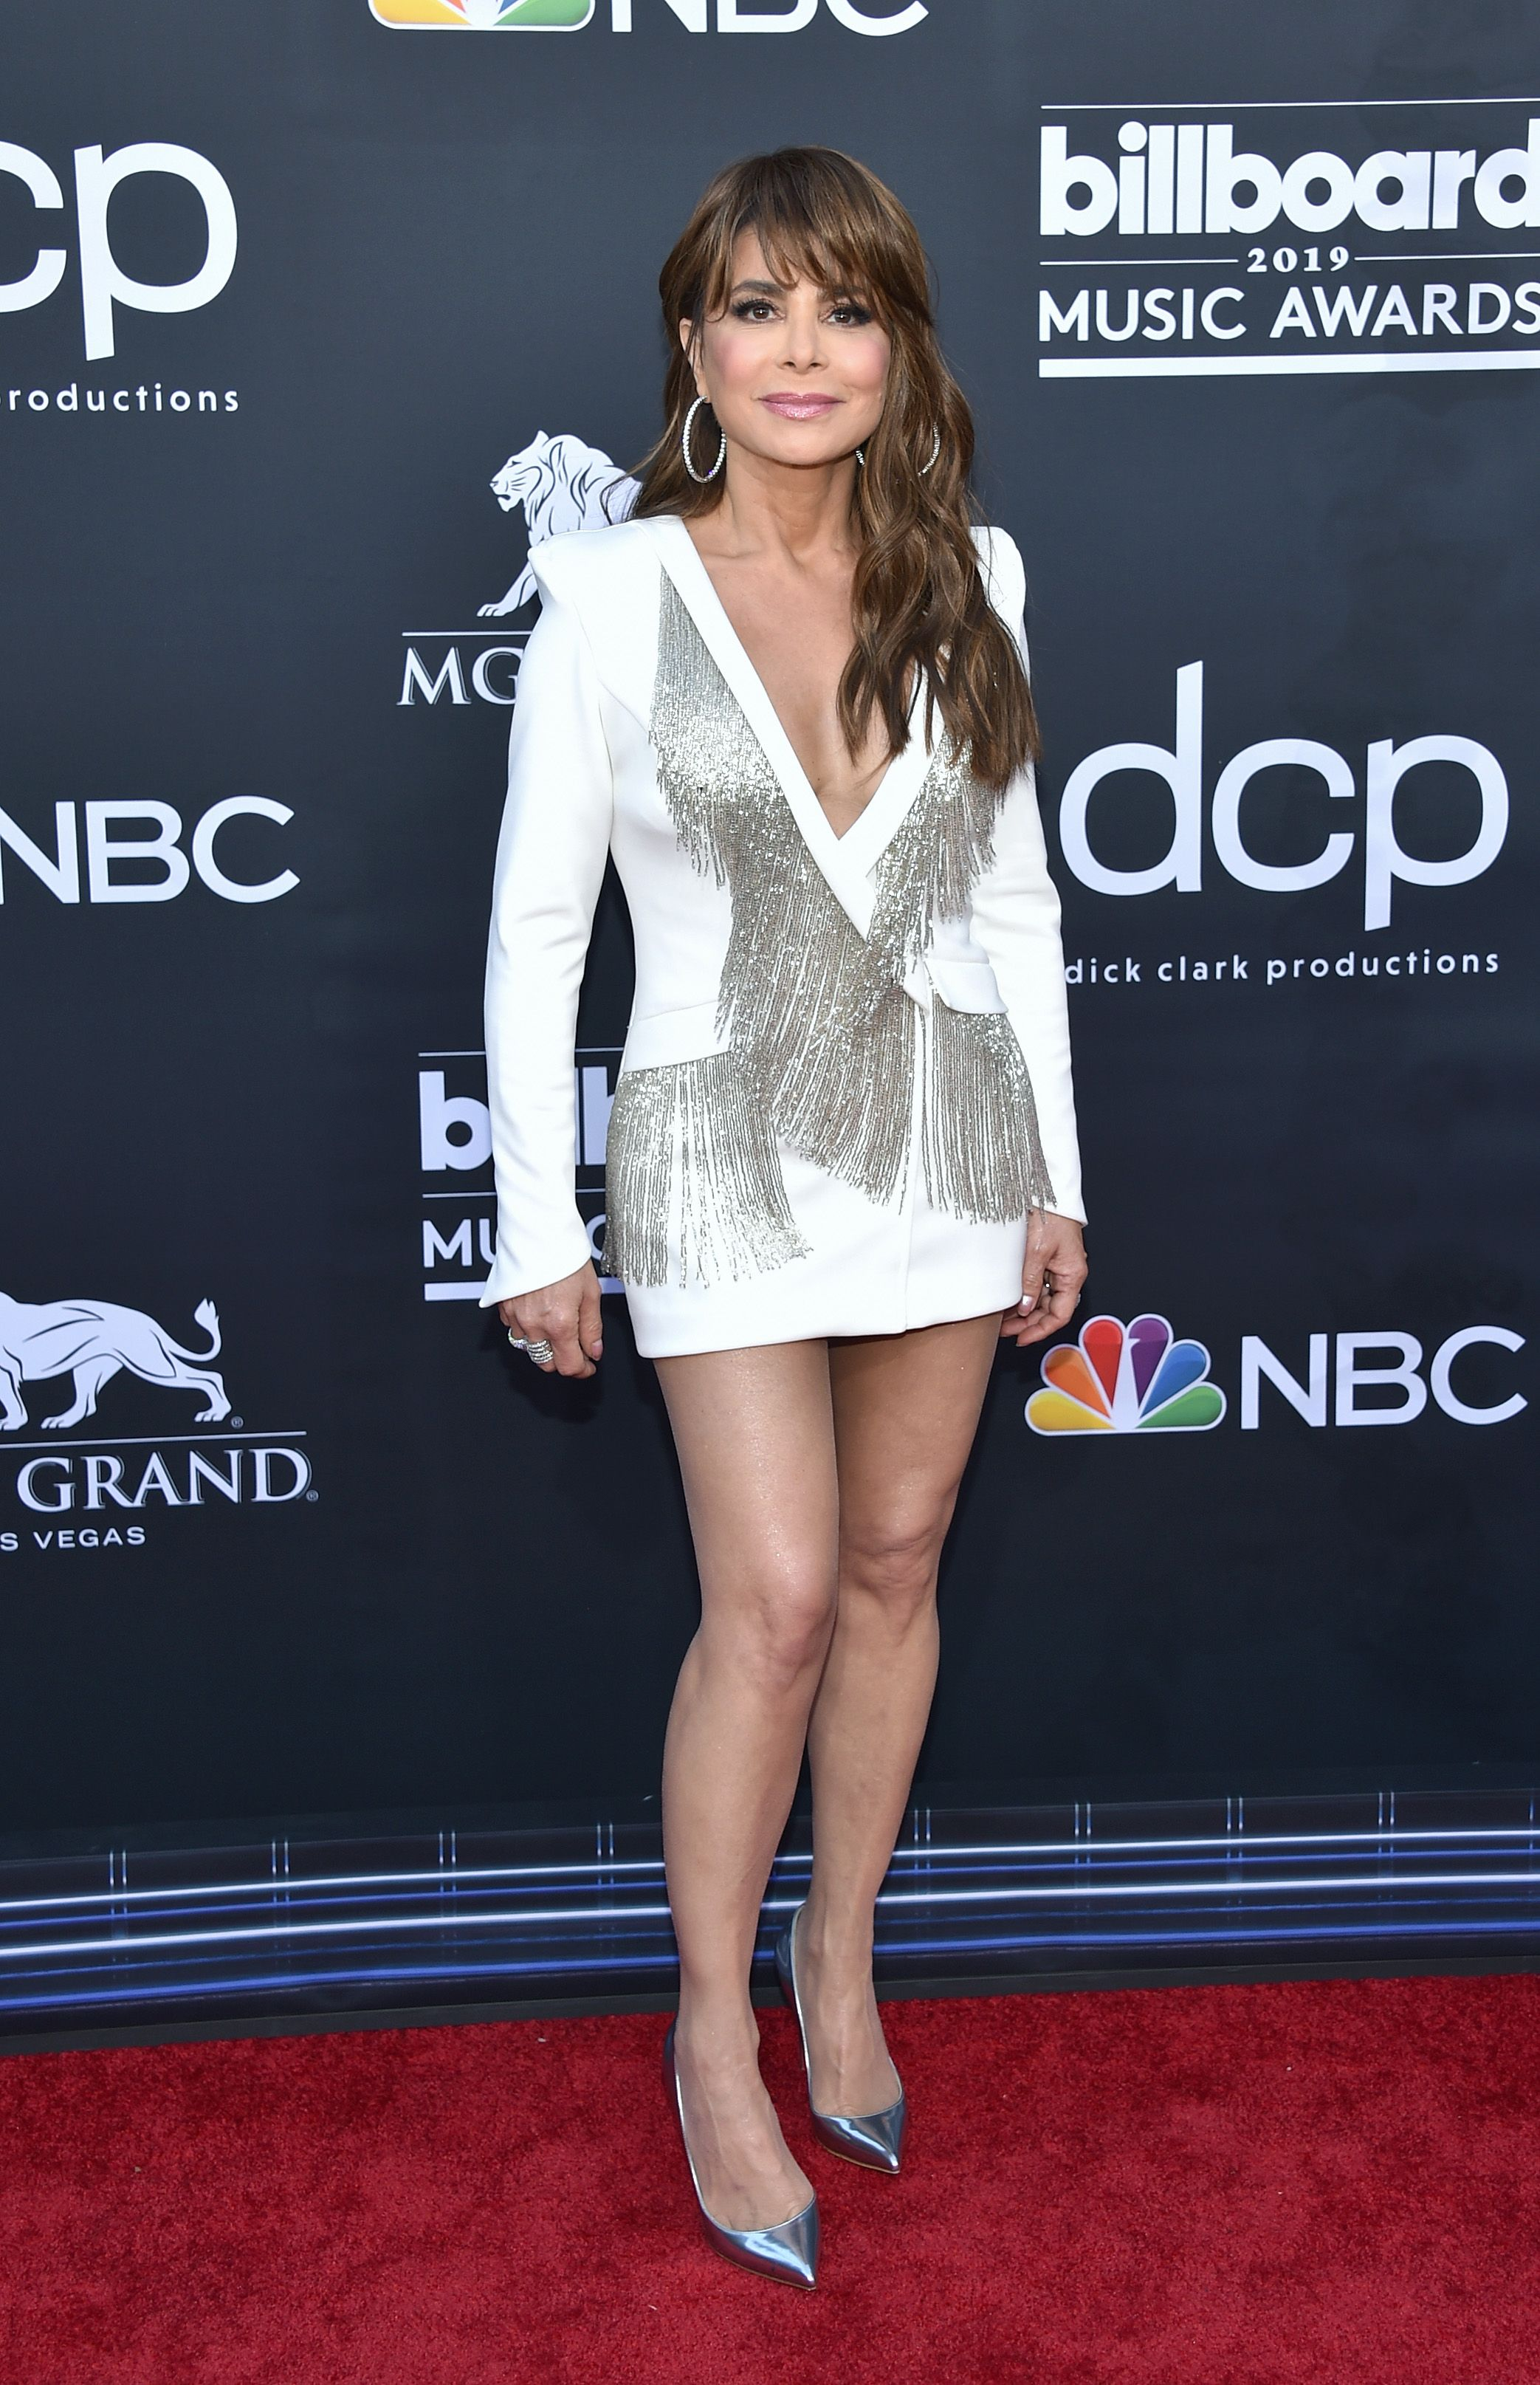 Paula Abdul at the Billboard Music Awards at MGM Grand Garden Arena on May 1, 2019, in Las Vegas, Nevada | Photo: John Shearer/Getty Images